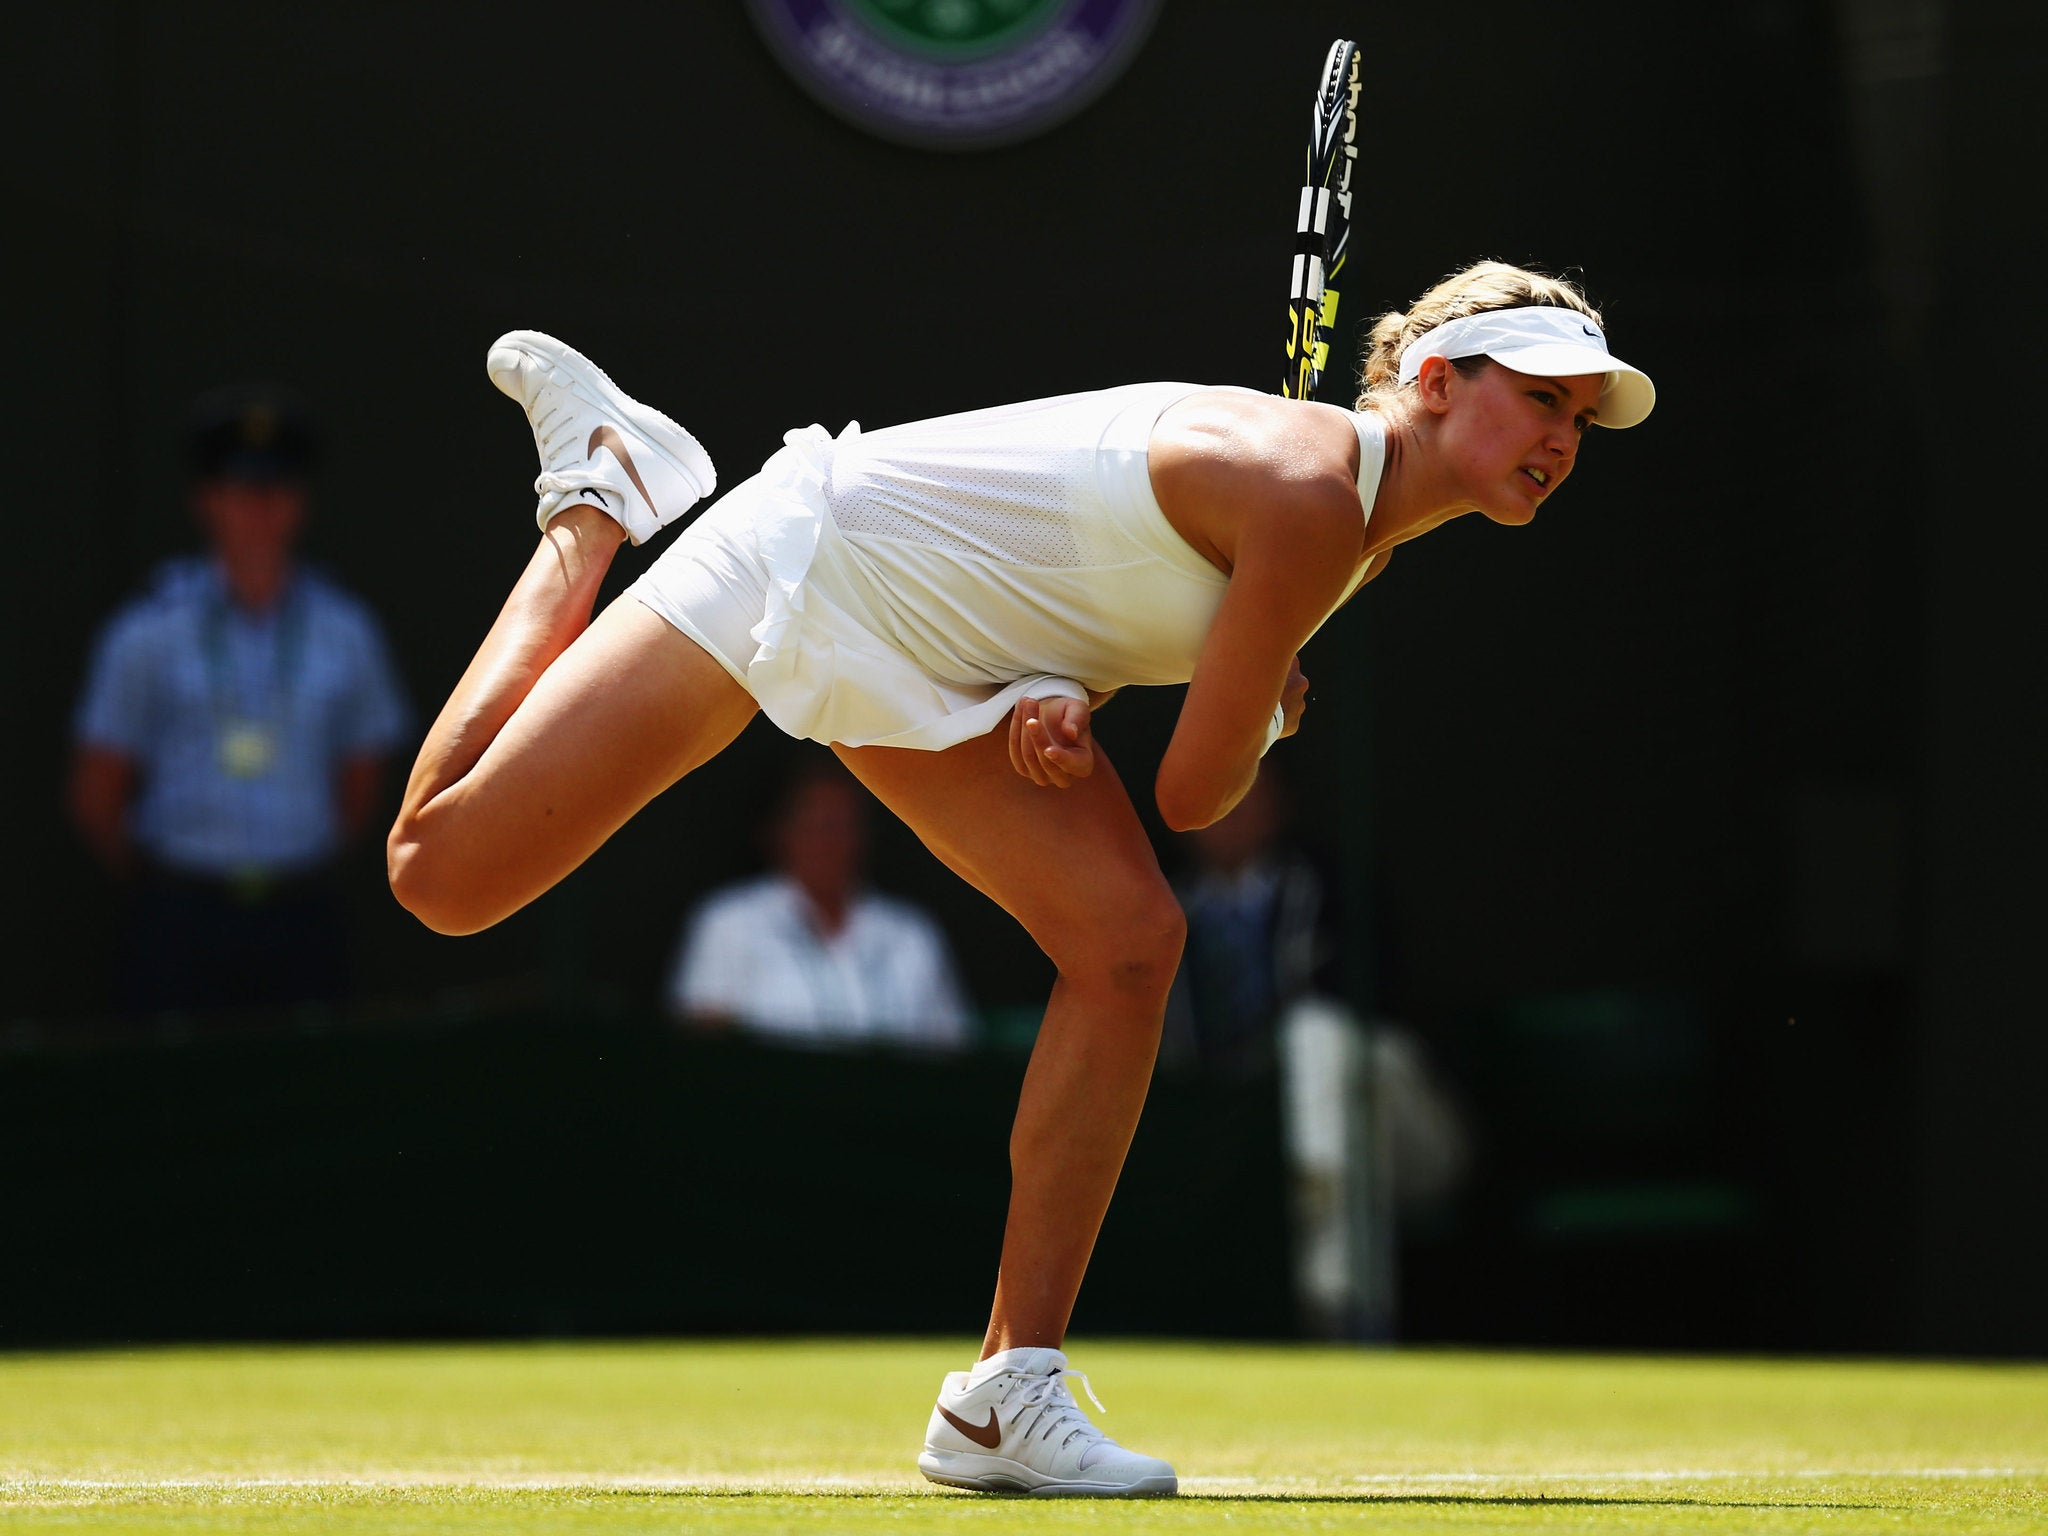 Bouchard vs halep betting expert cpu based cryptocurrency